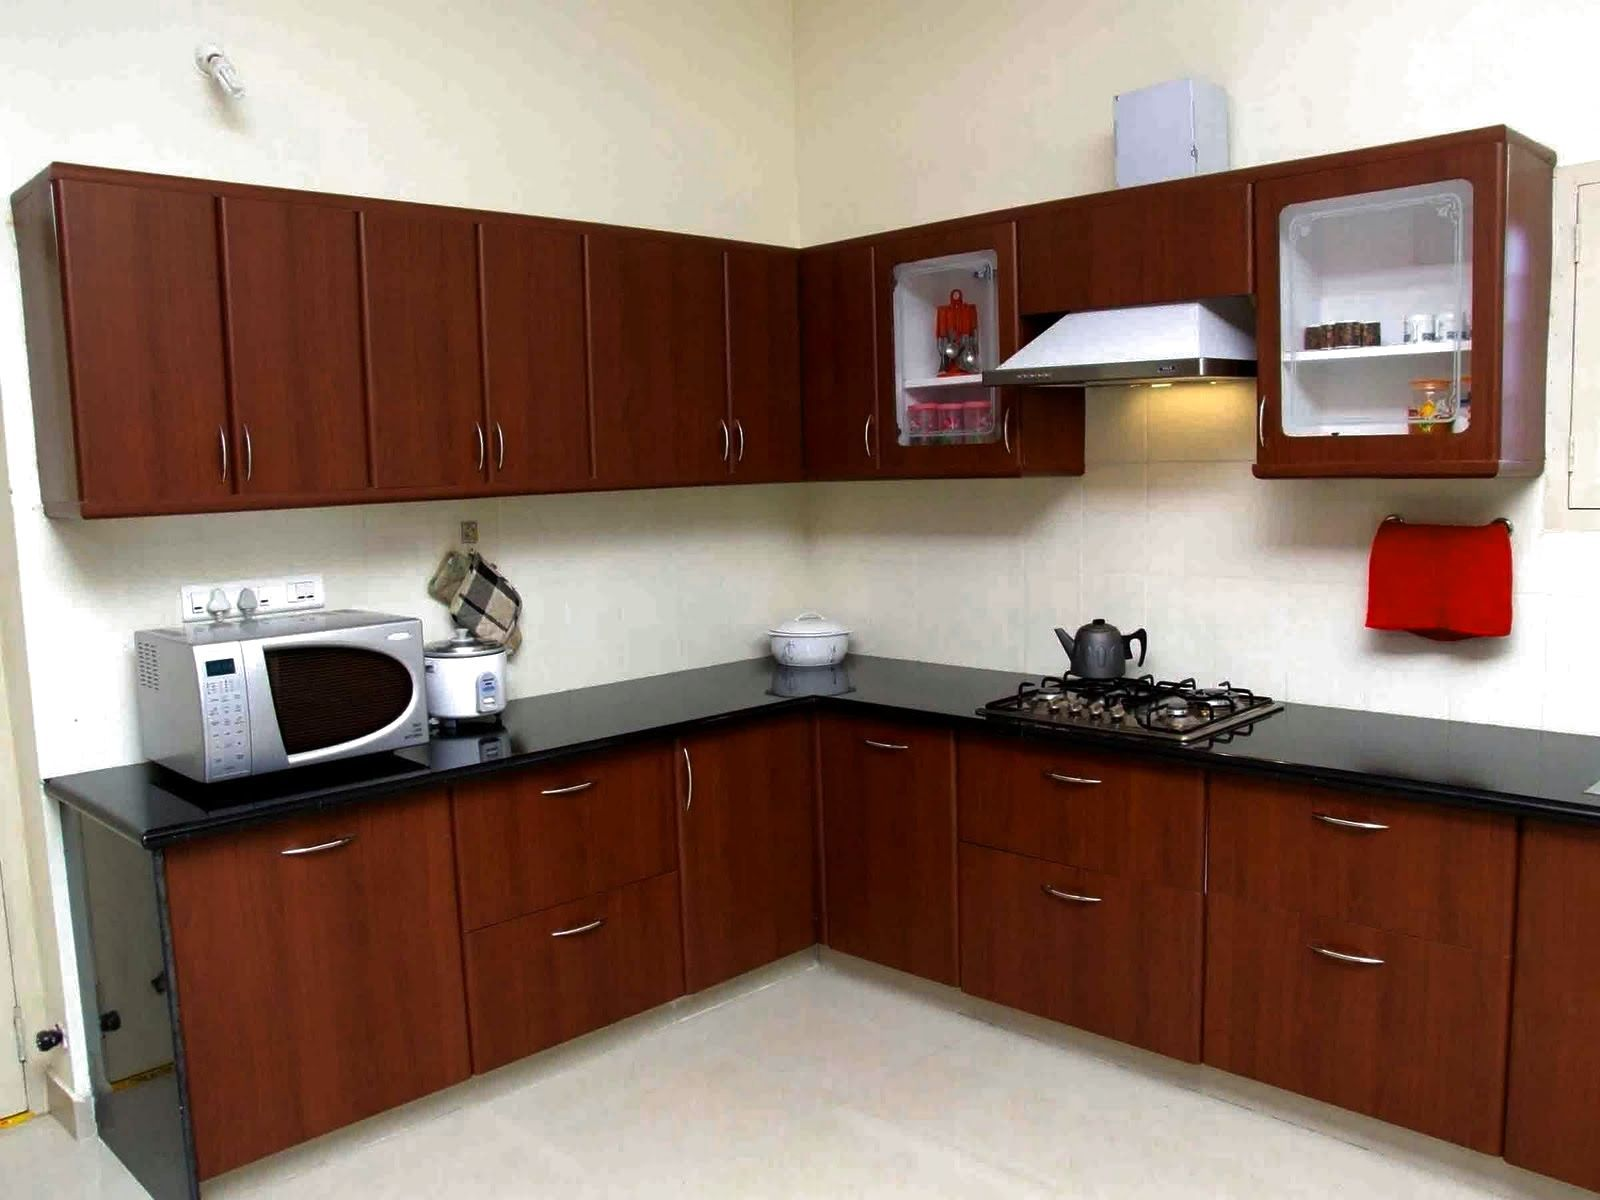 Permalink to Kitchen Design Ideas For Small Kitchens In India